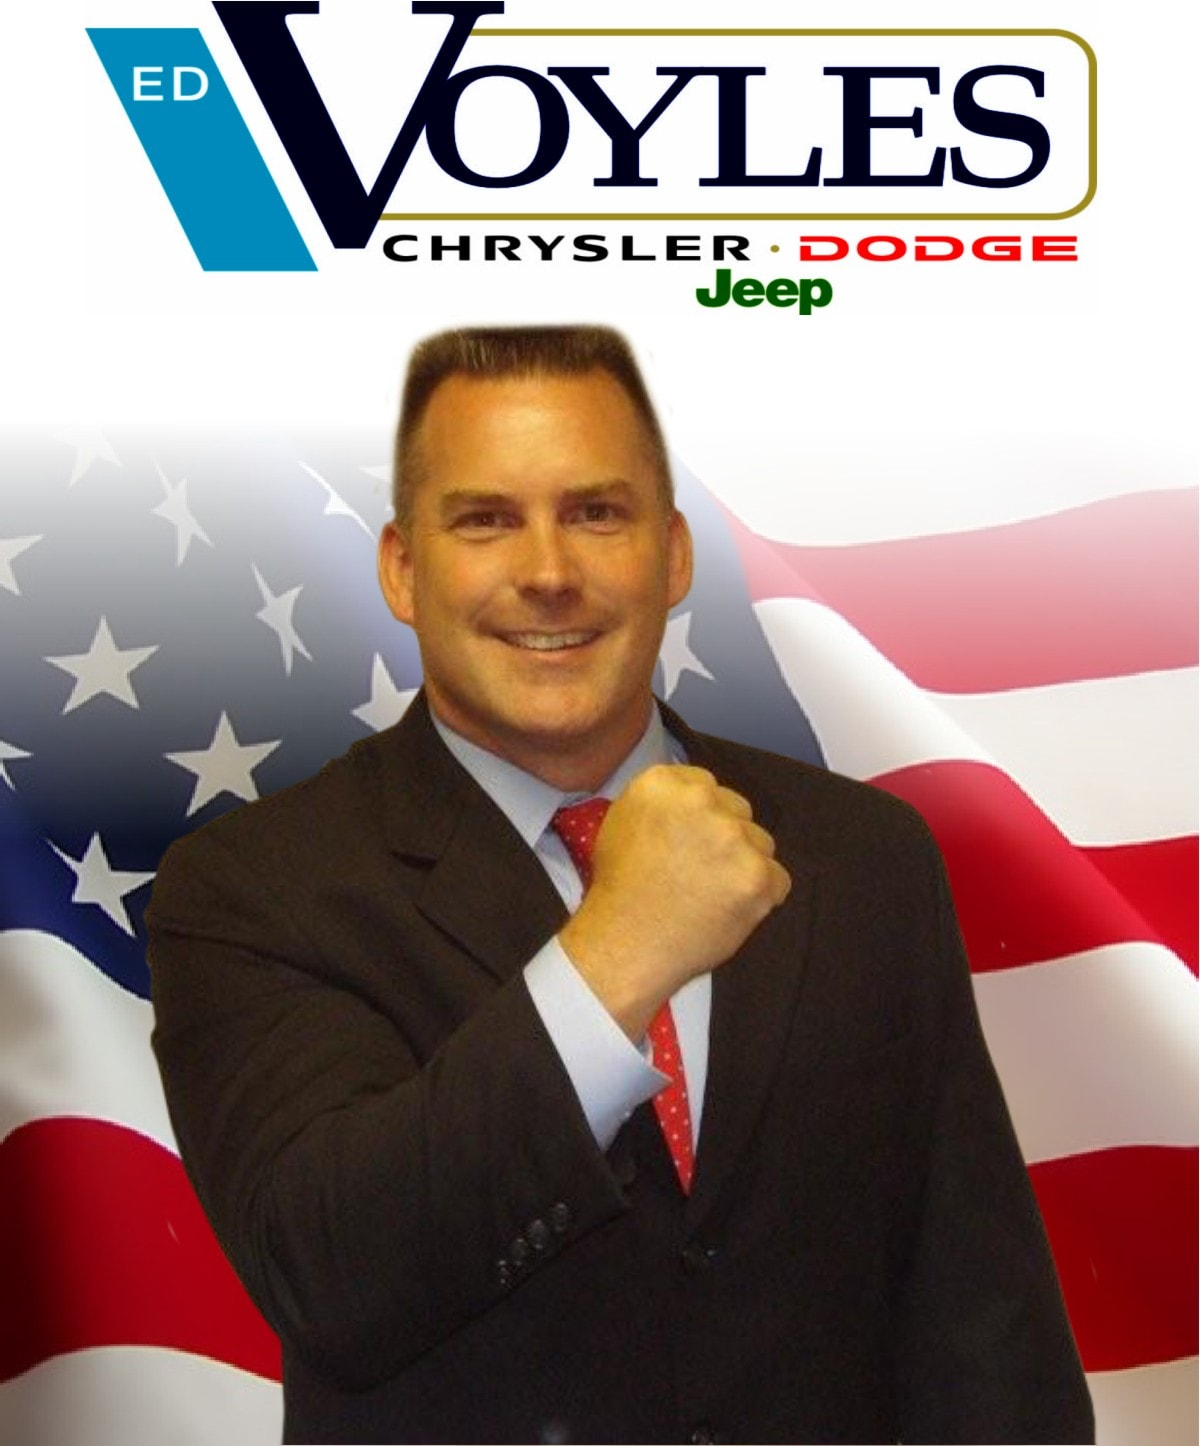 Ed Voyles Kia Home: Ed Voyles Chrysler Jeep Dodge